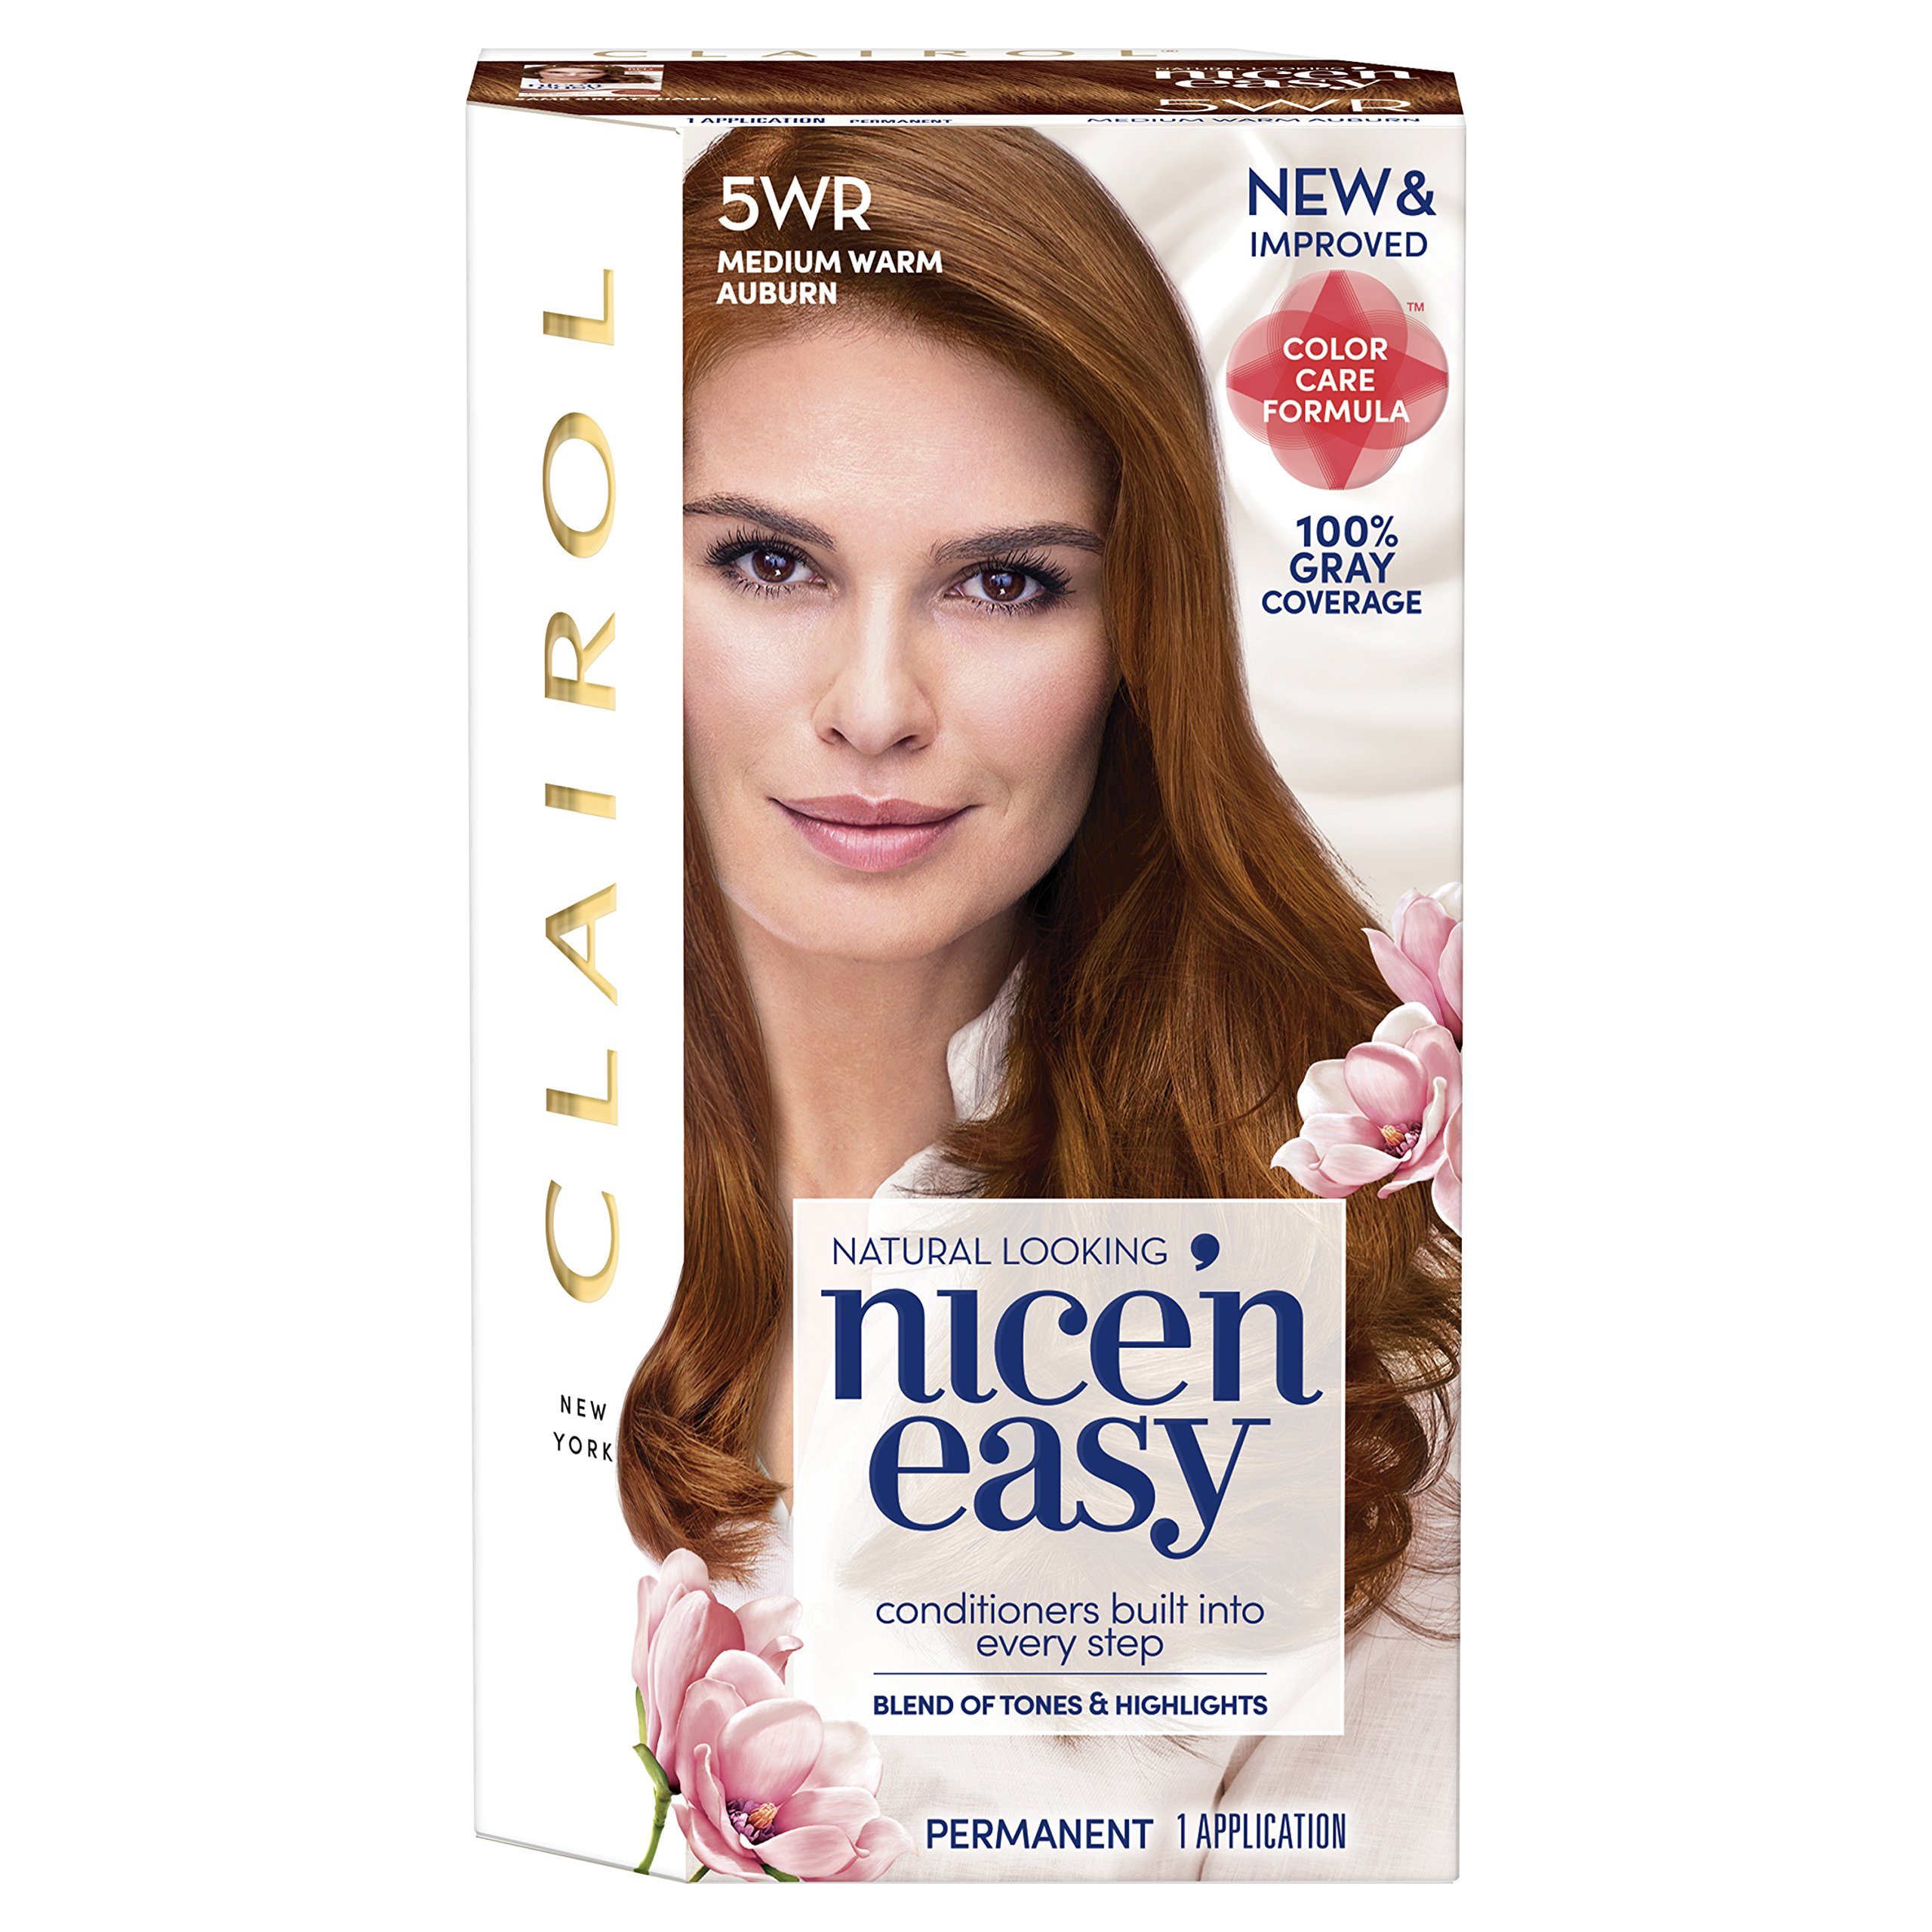 Clairol Nice'n Easy Permanent Hair Color, 5WR Medium Warm Auburn, 1 Count